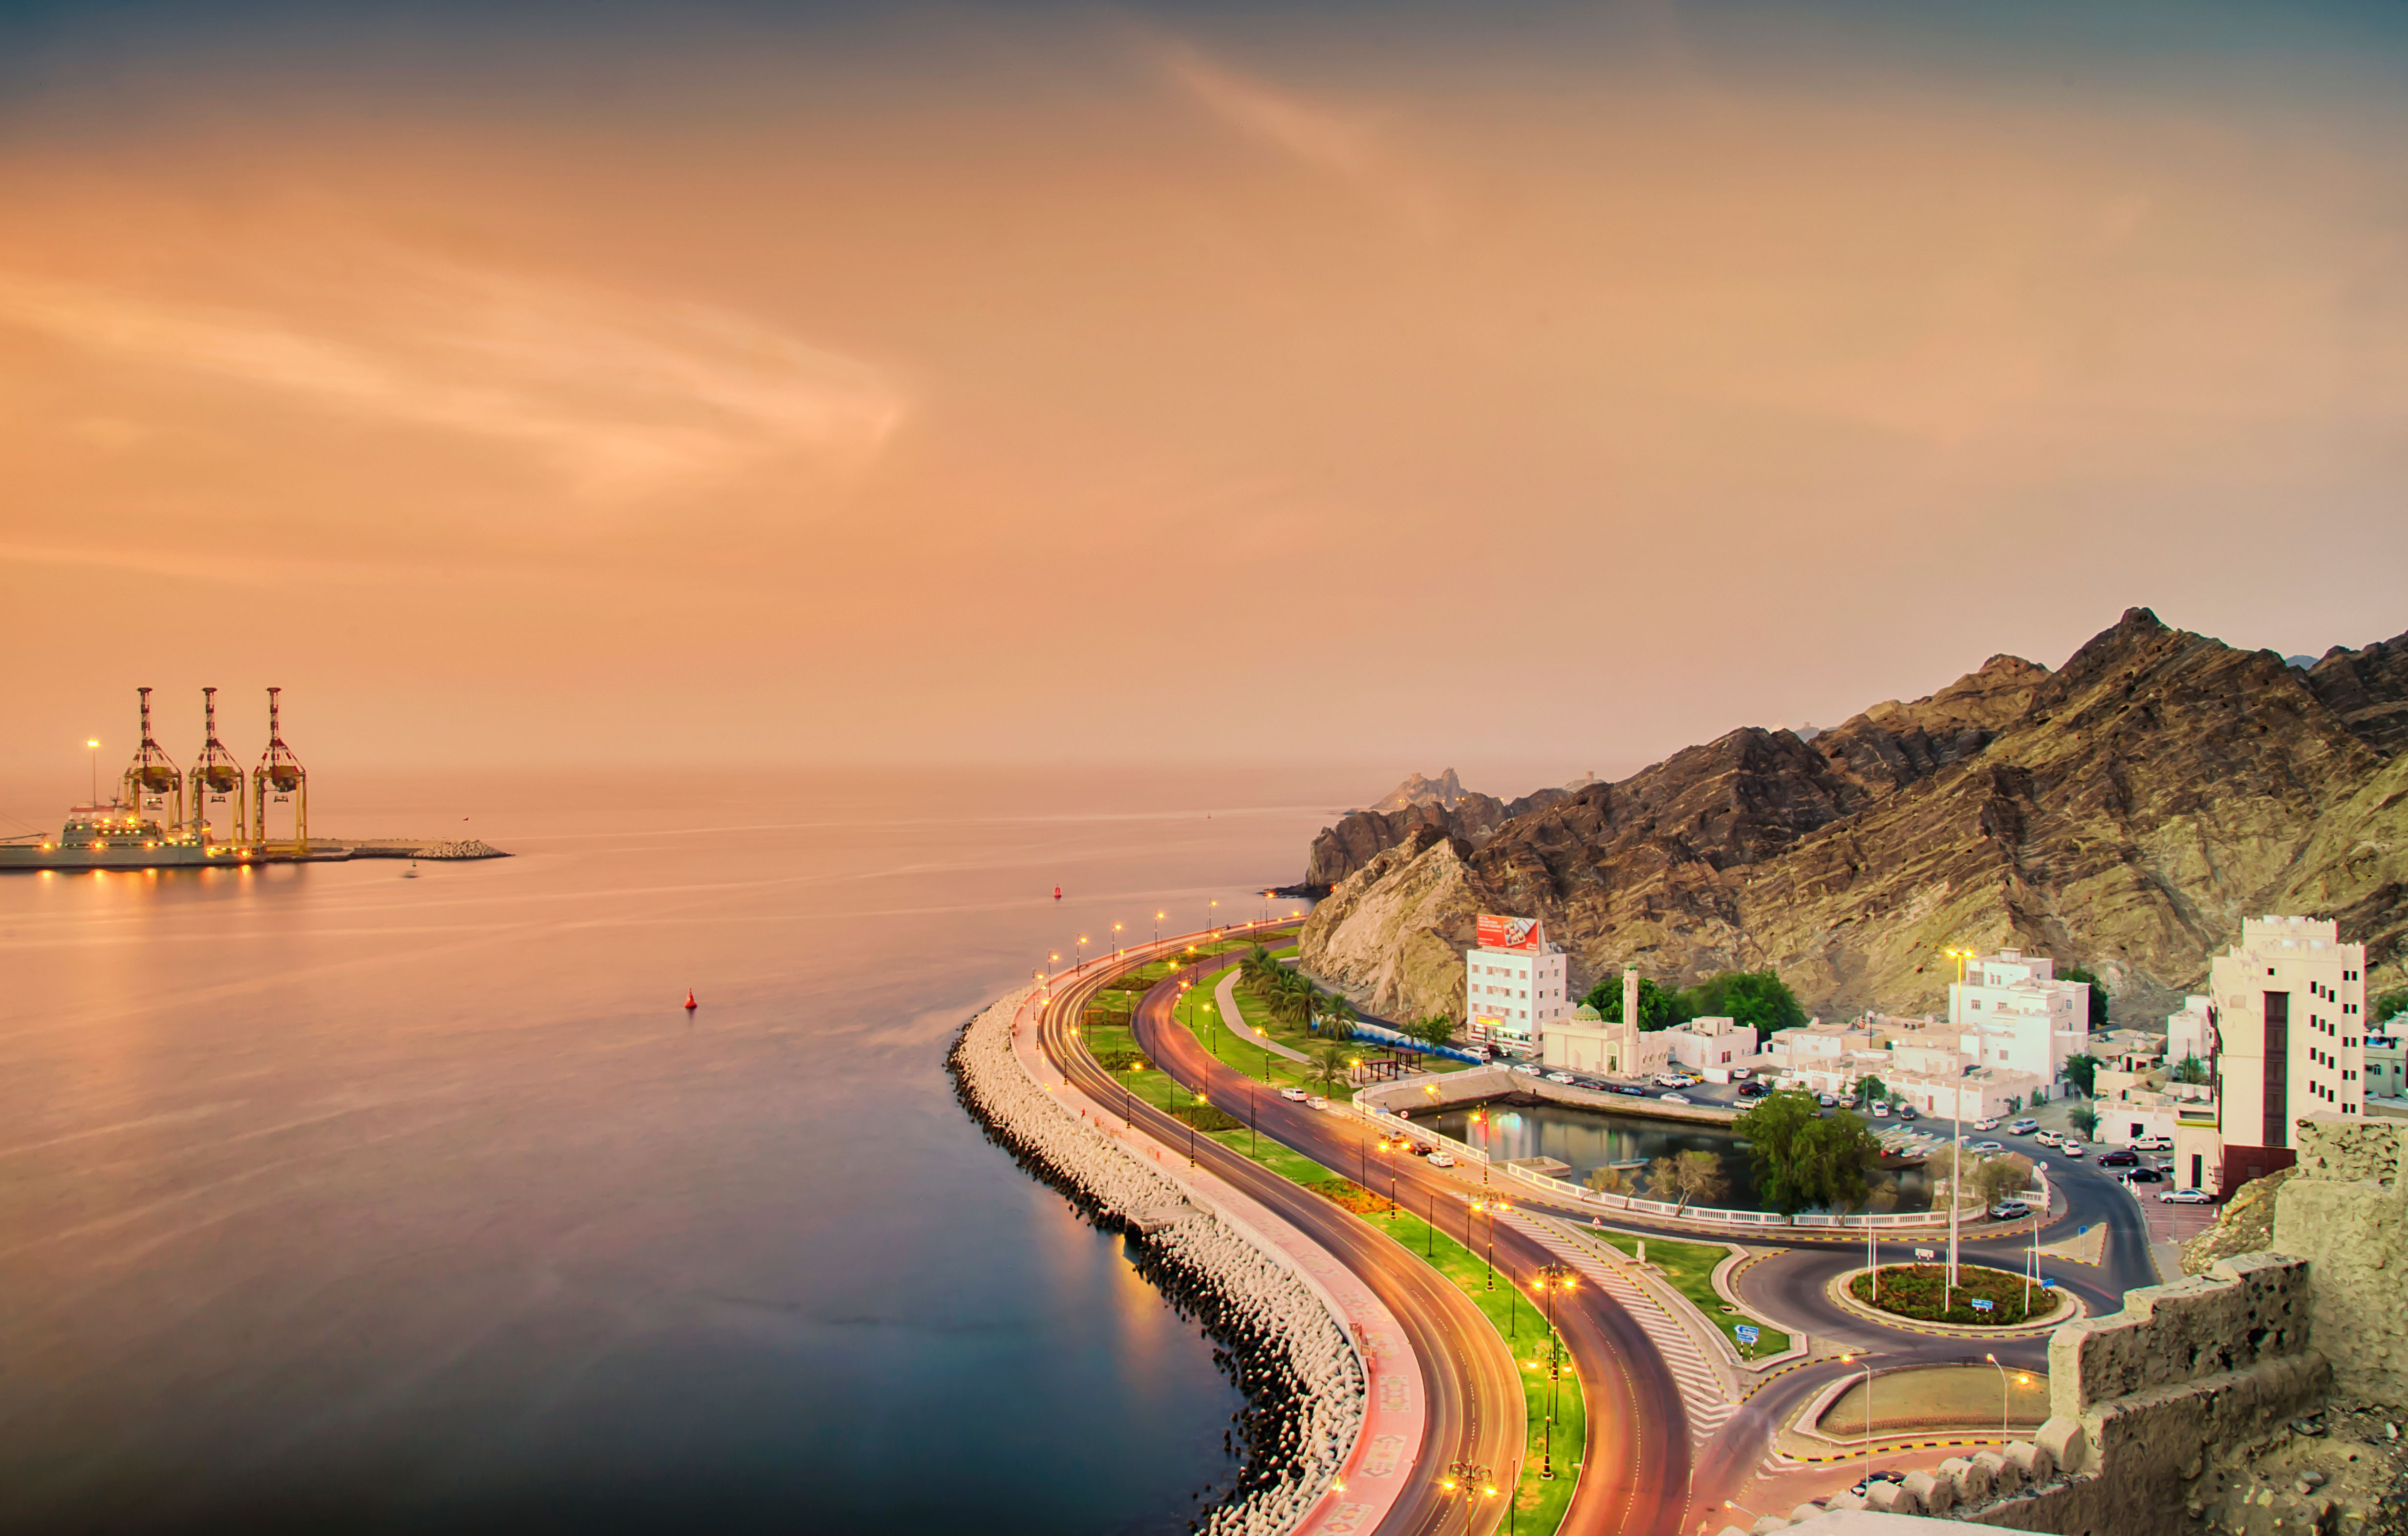 The Top 15 Things to Do in Oman